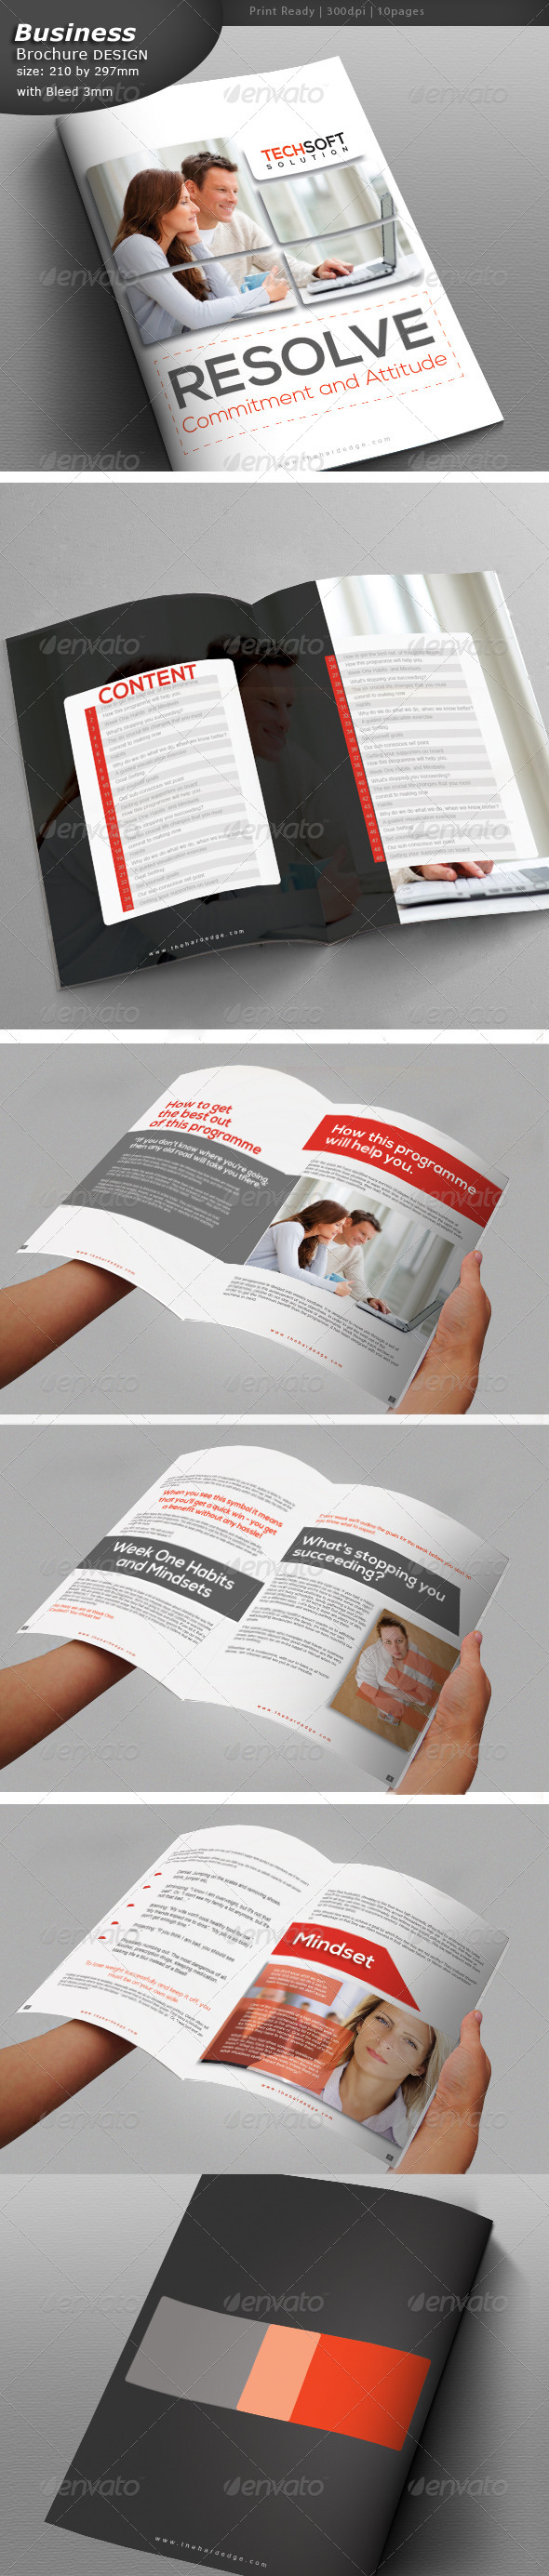 Lawyer Brochure Design  - Brochures Print Templates